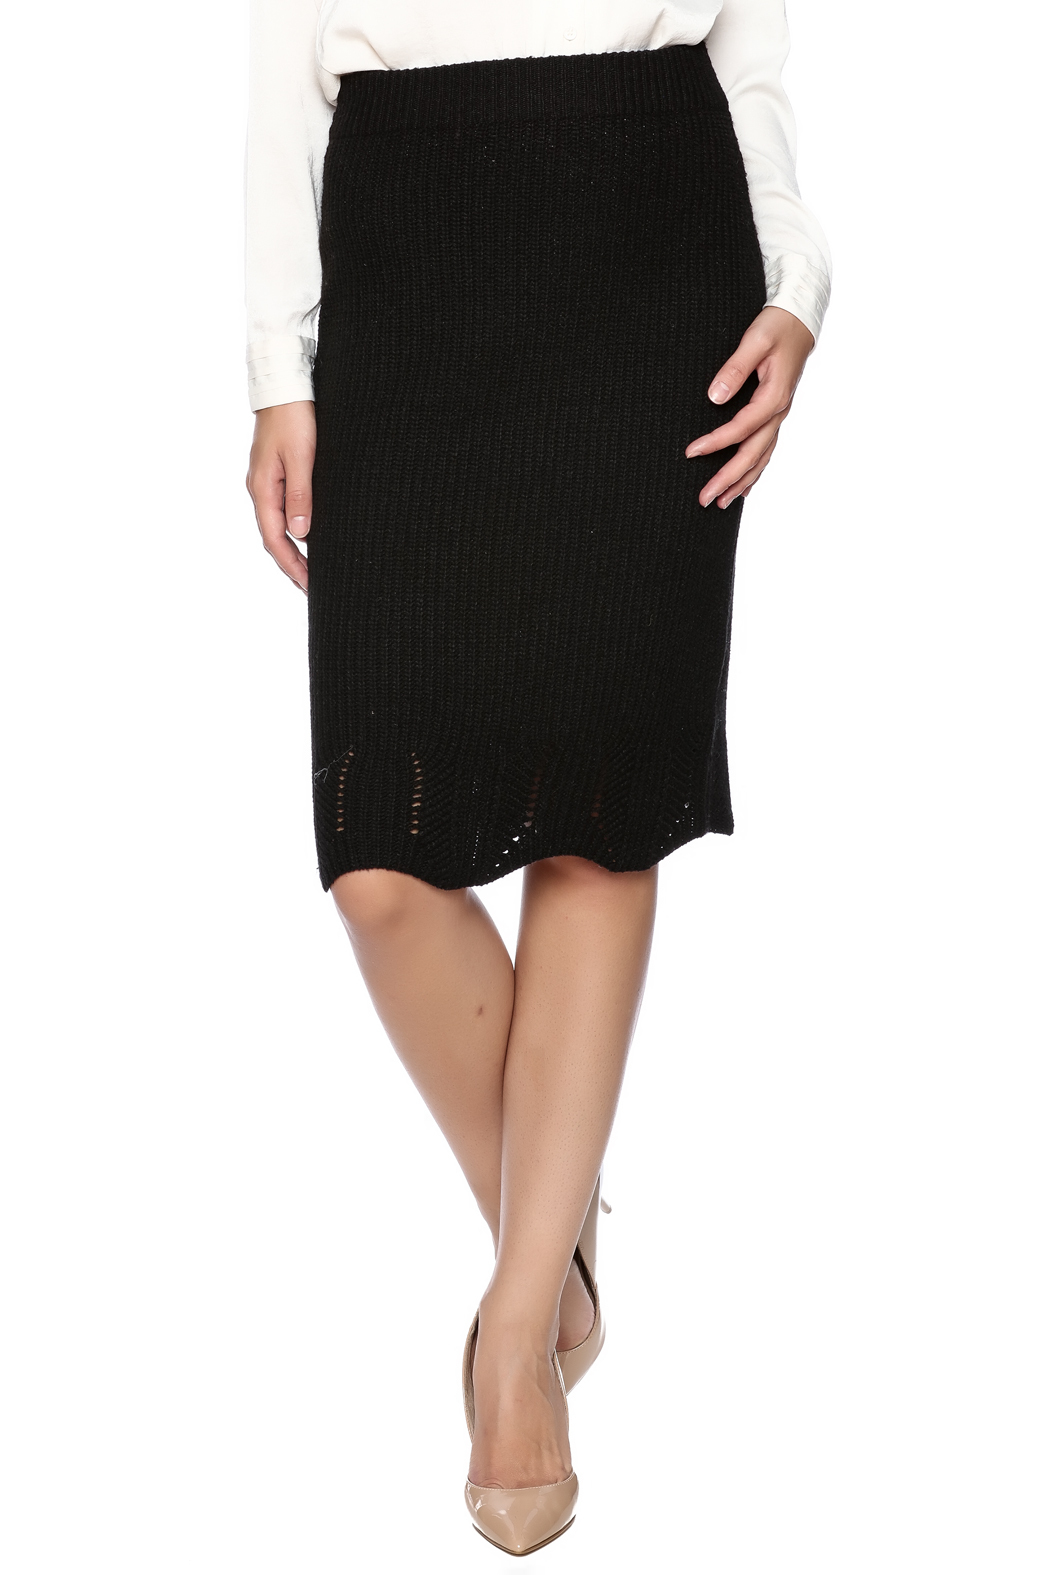 LoveRiche Knit Skirt - Front Cropped Image